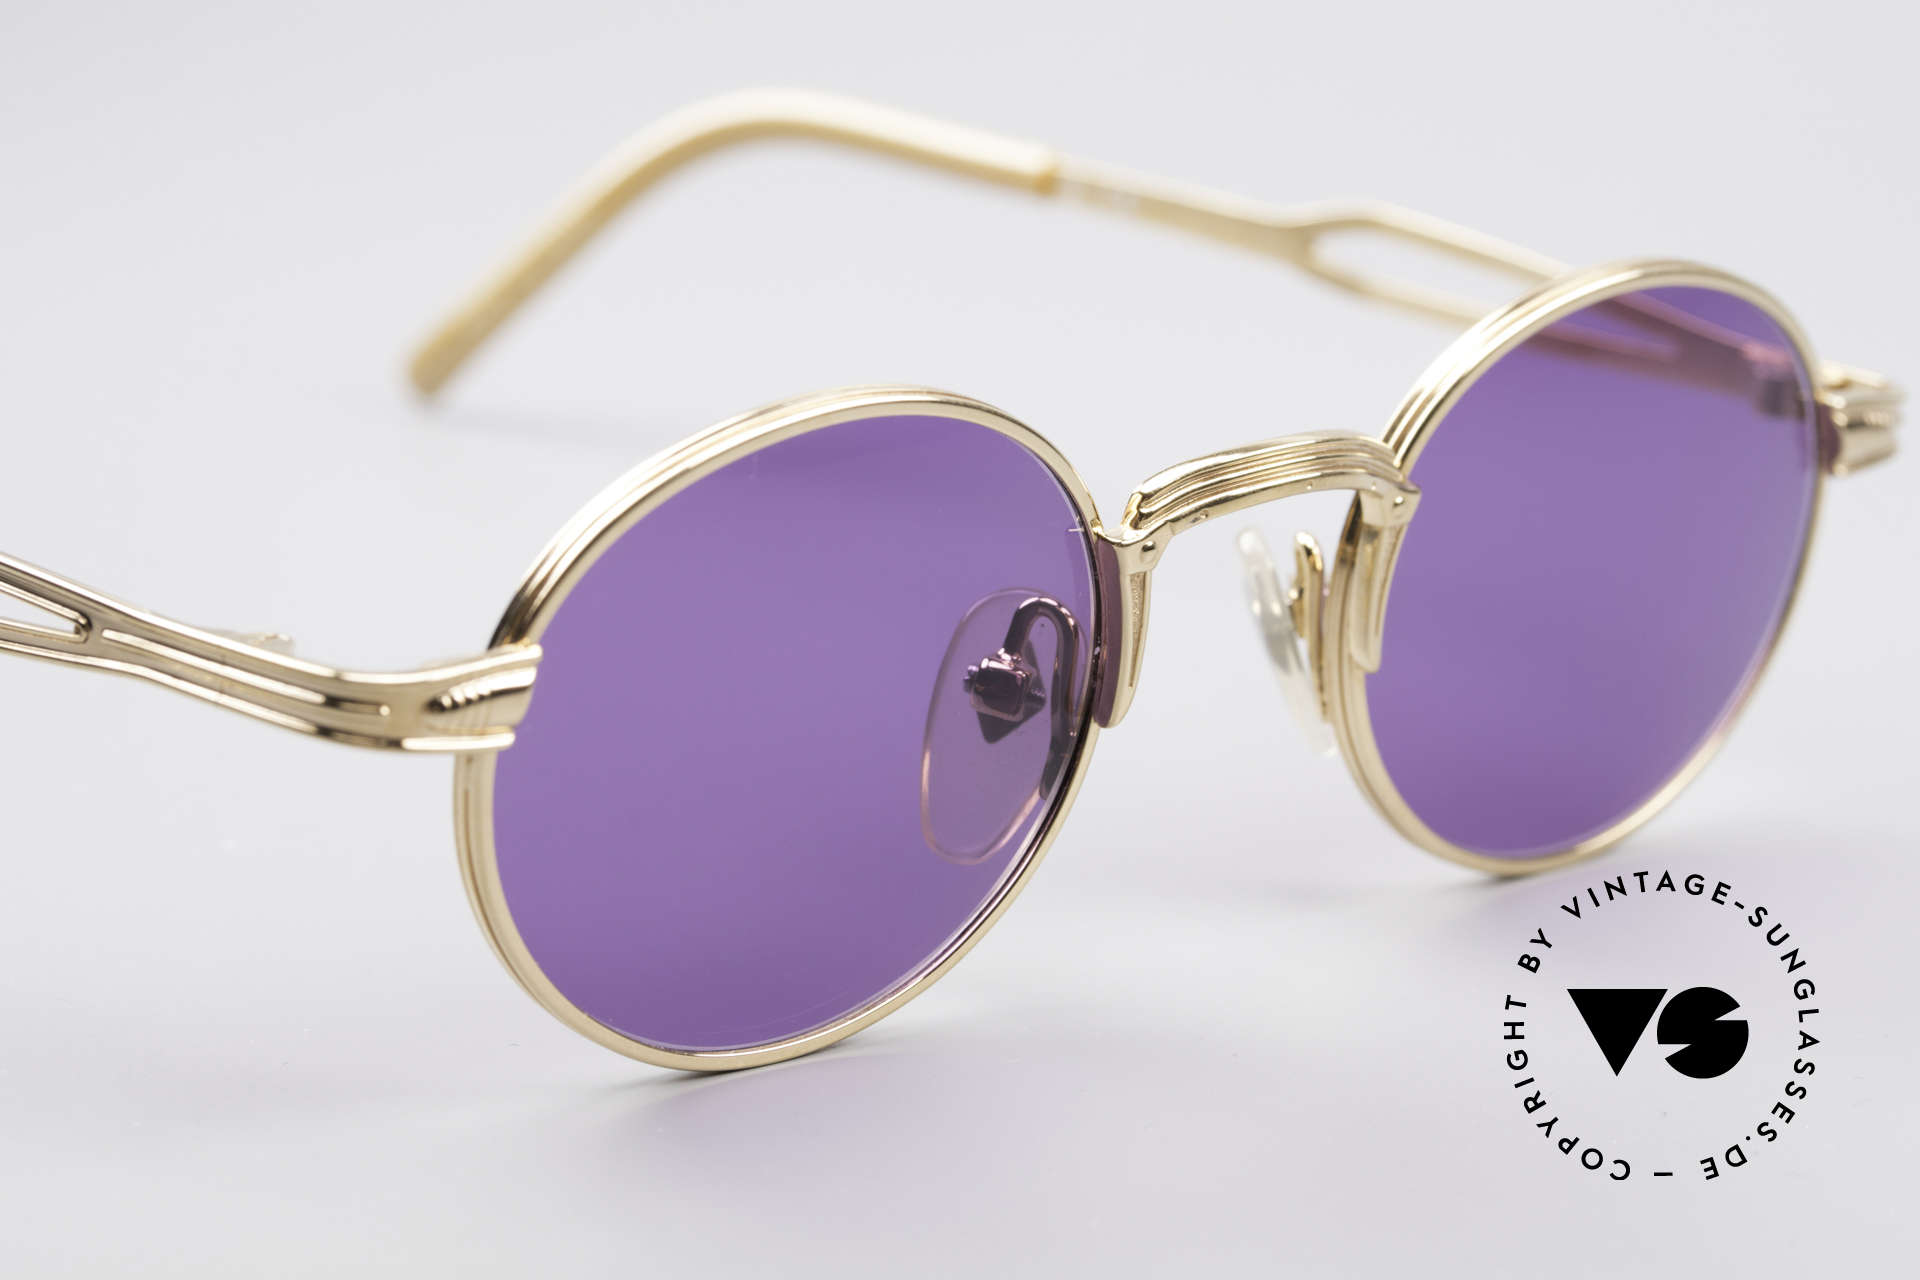 Jean Paul Gaultier 55-7107 Small Round Gold Plated, unworn (like all our vintage GAULTIER sunglasses), Made for Men and Women